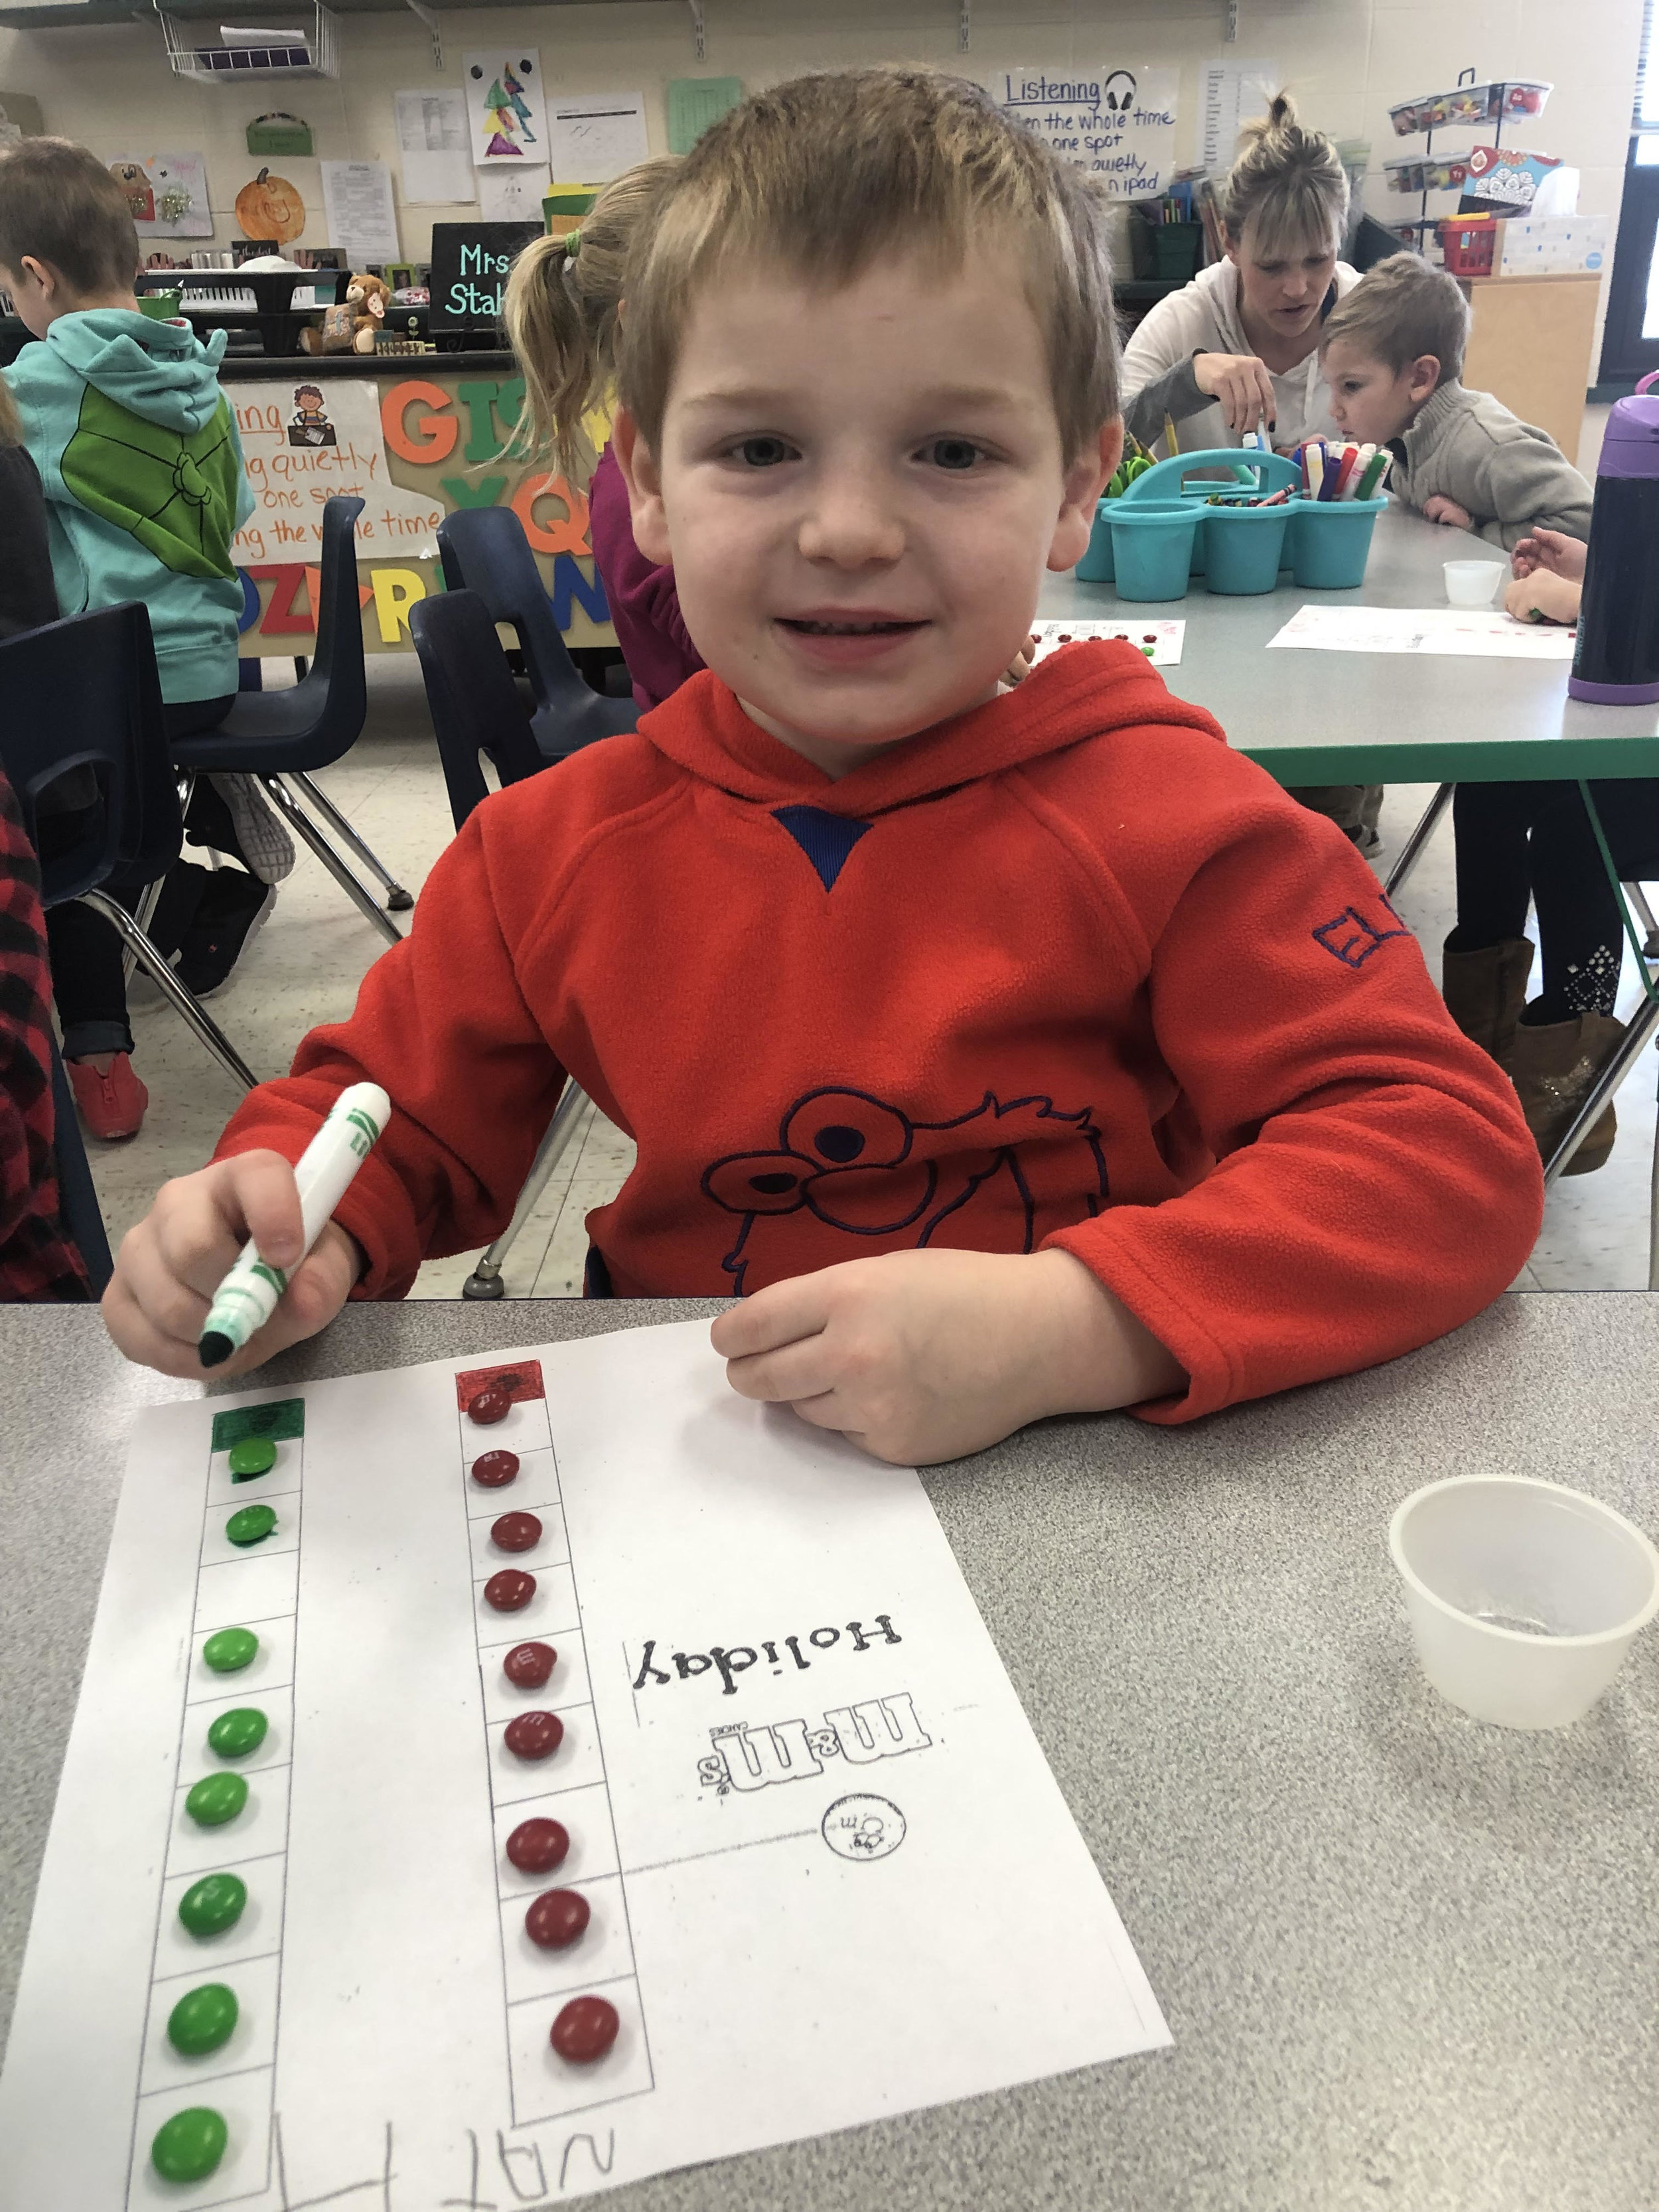 graphing m&m's